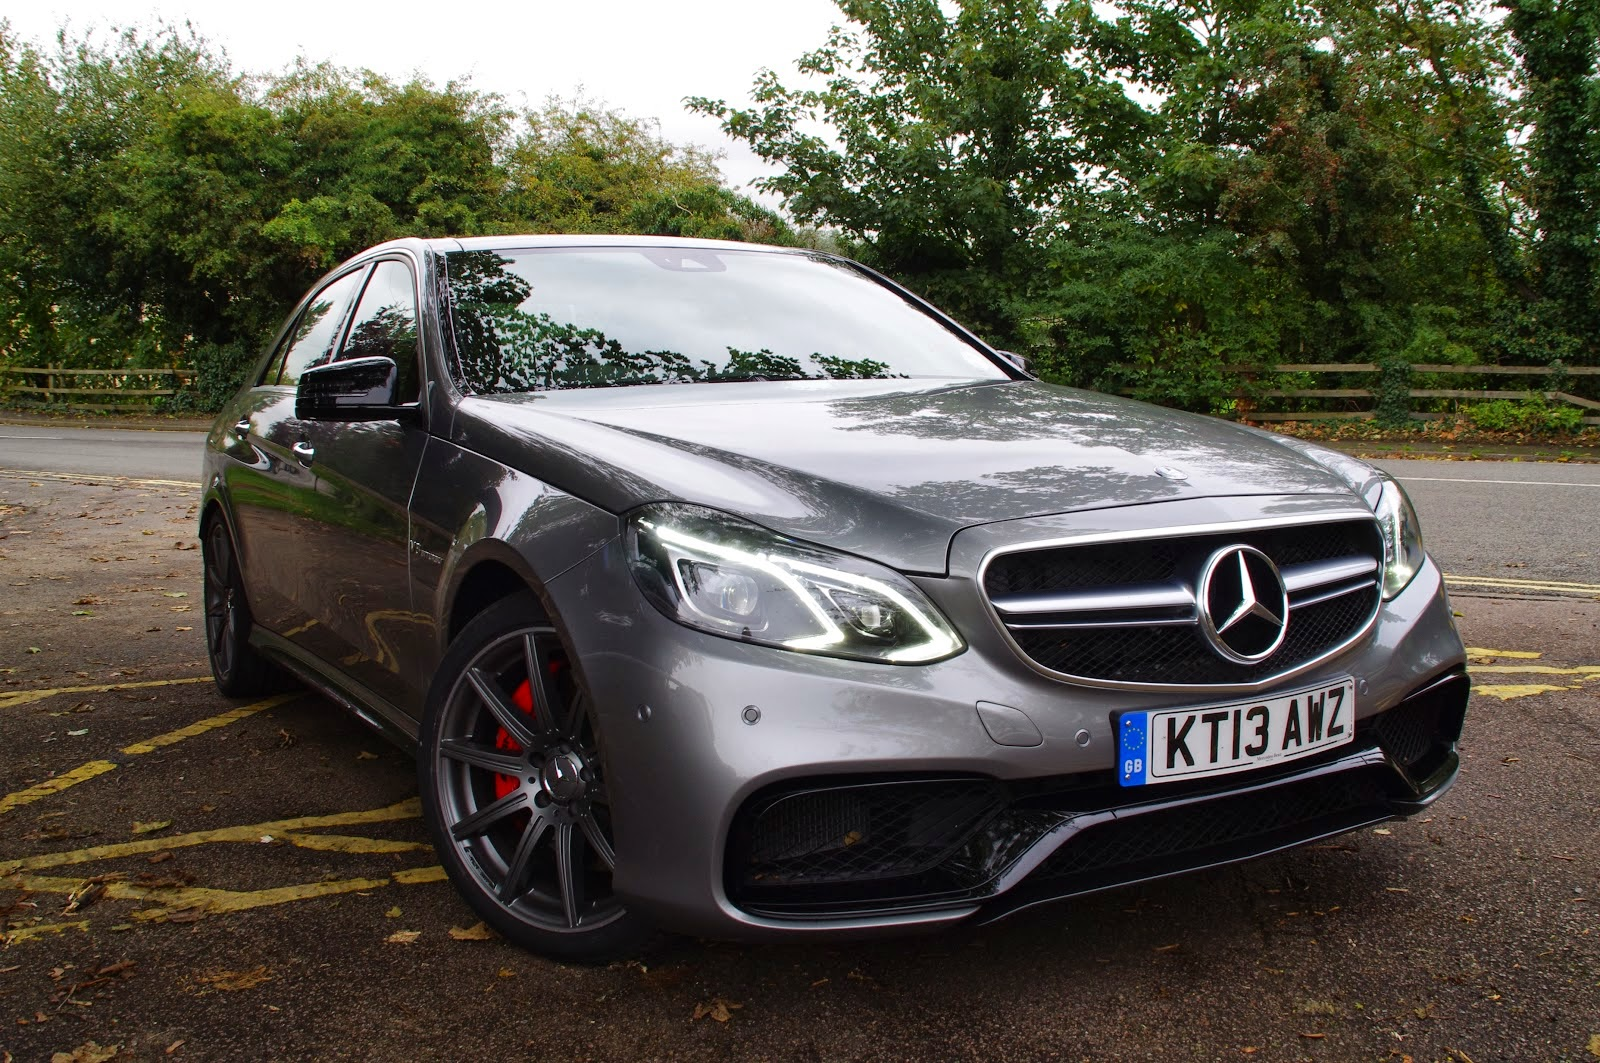 The e63 amg is here so we can squeeze a fast saloon into the list the c63 amg is arguably the better performance car but mercedes hasn t added the c63 to